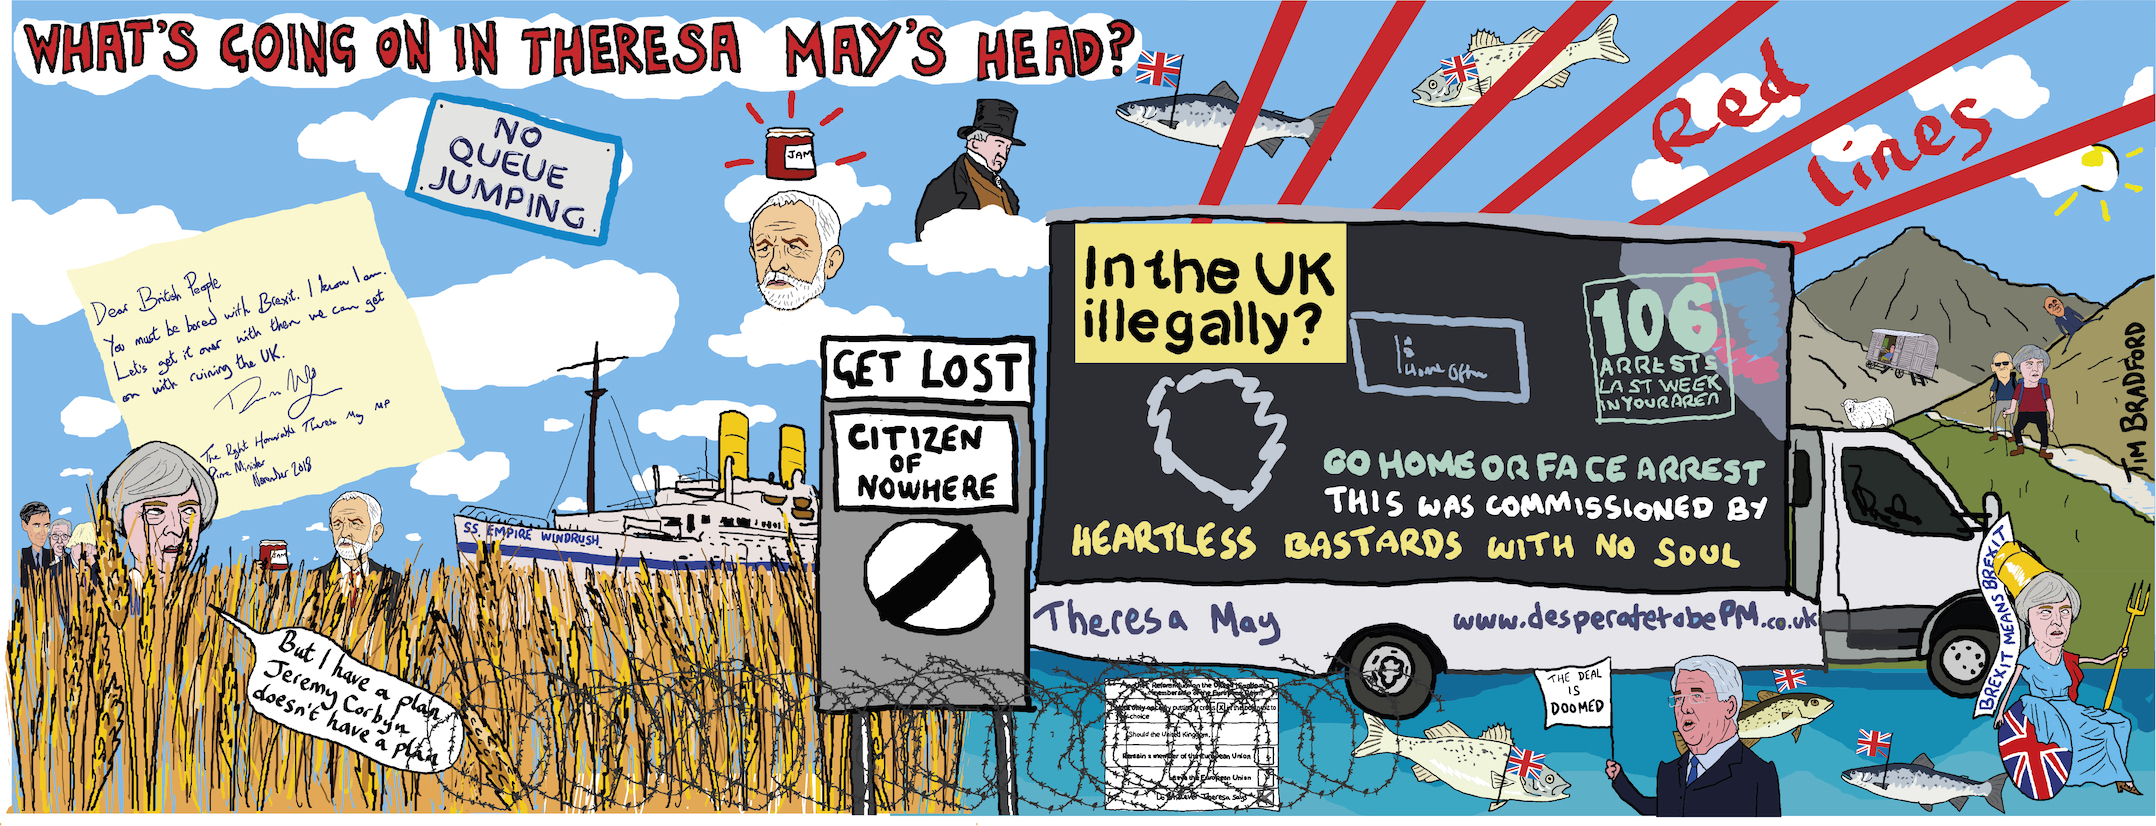 What's going on in Theresa May's head? - 27/11/2018